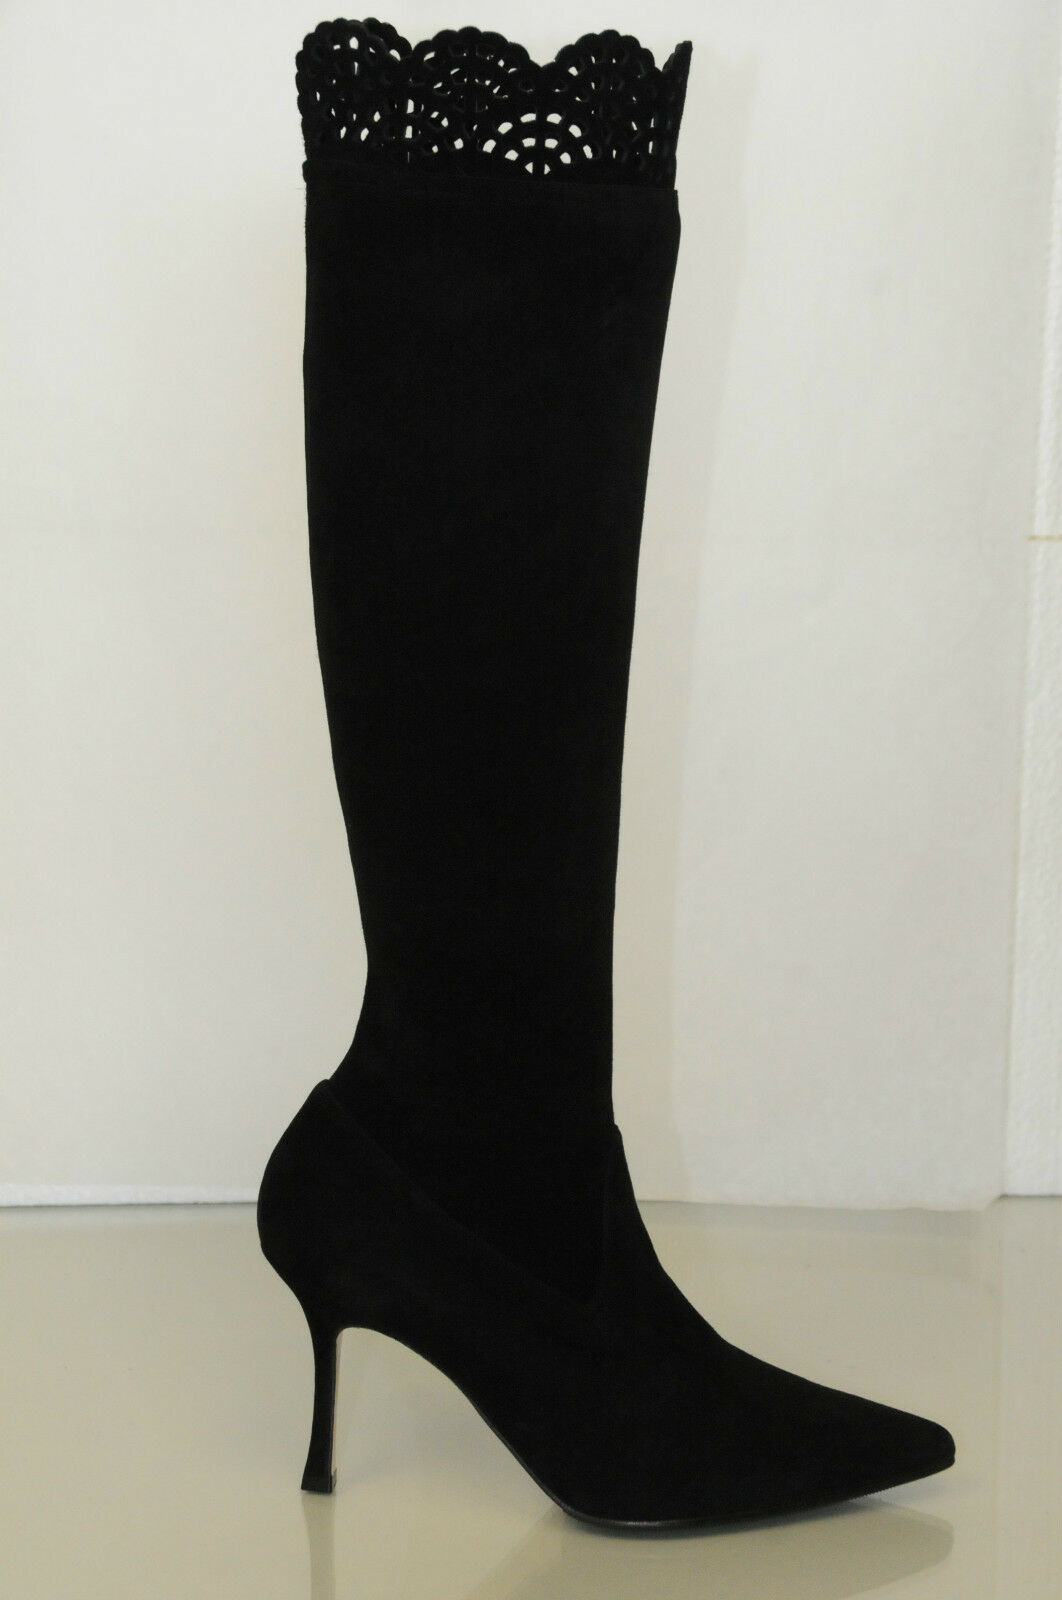 New MANOLO BLAHNIK Pafatolo 90 Black Suede Stretch Boots SHOES 34.5 36.5 40.5 42